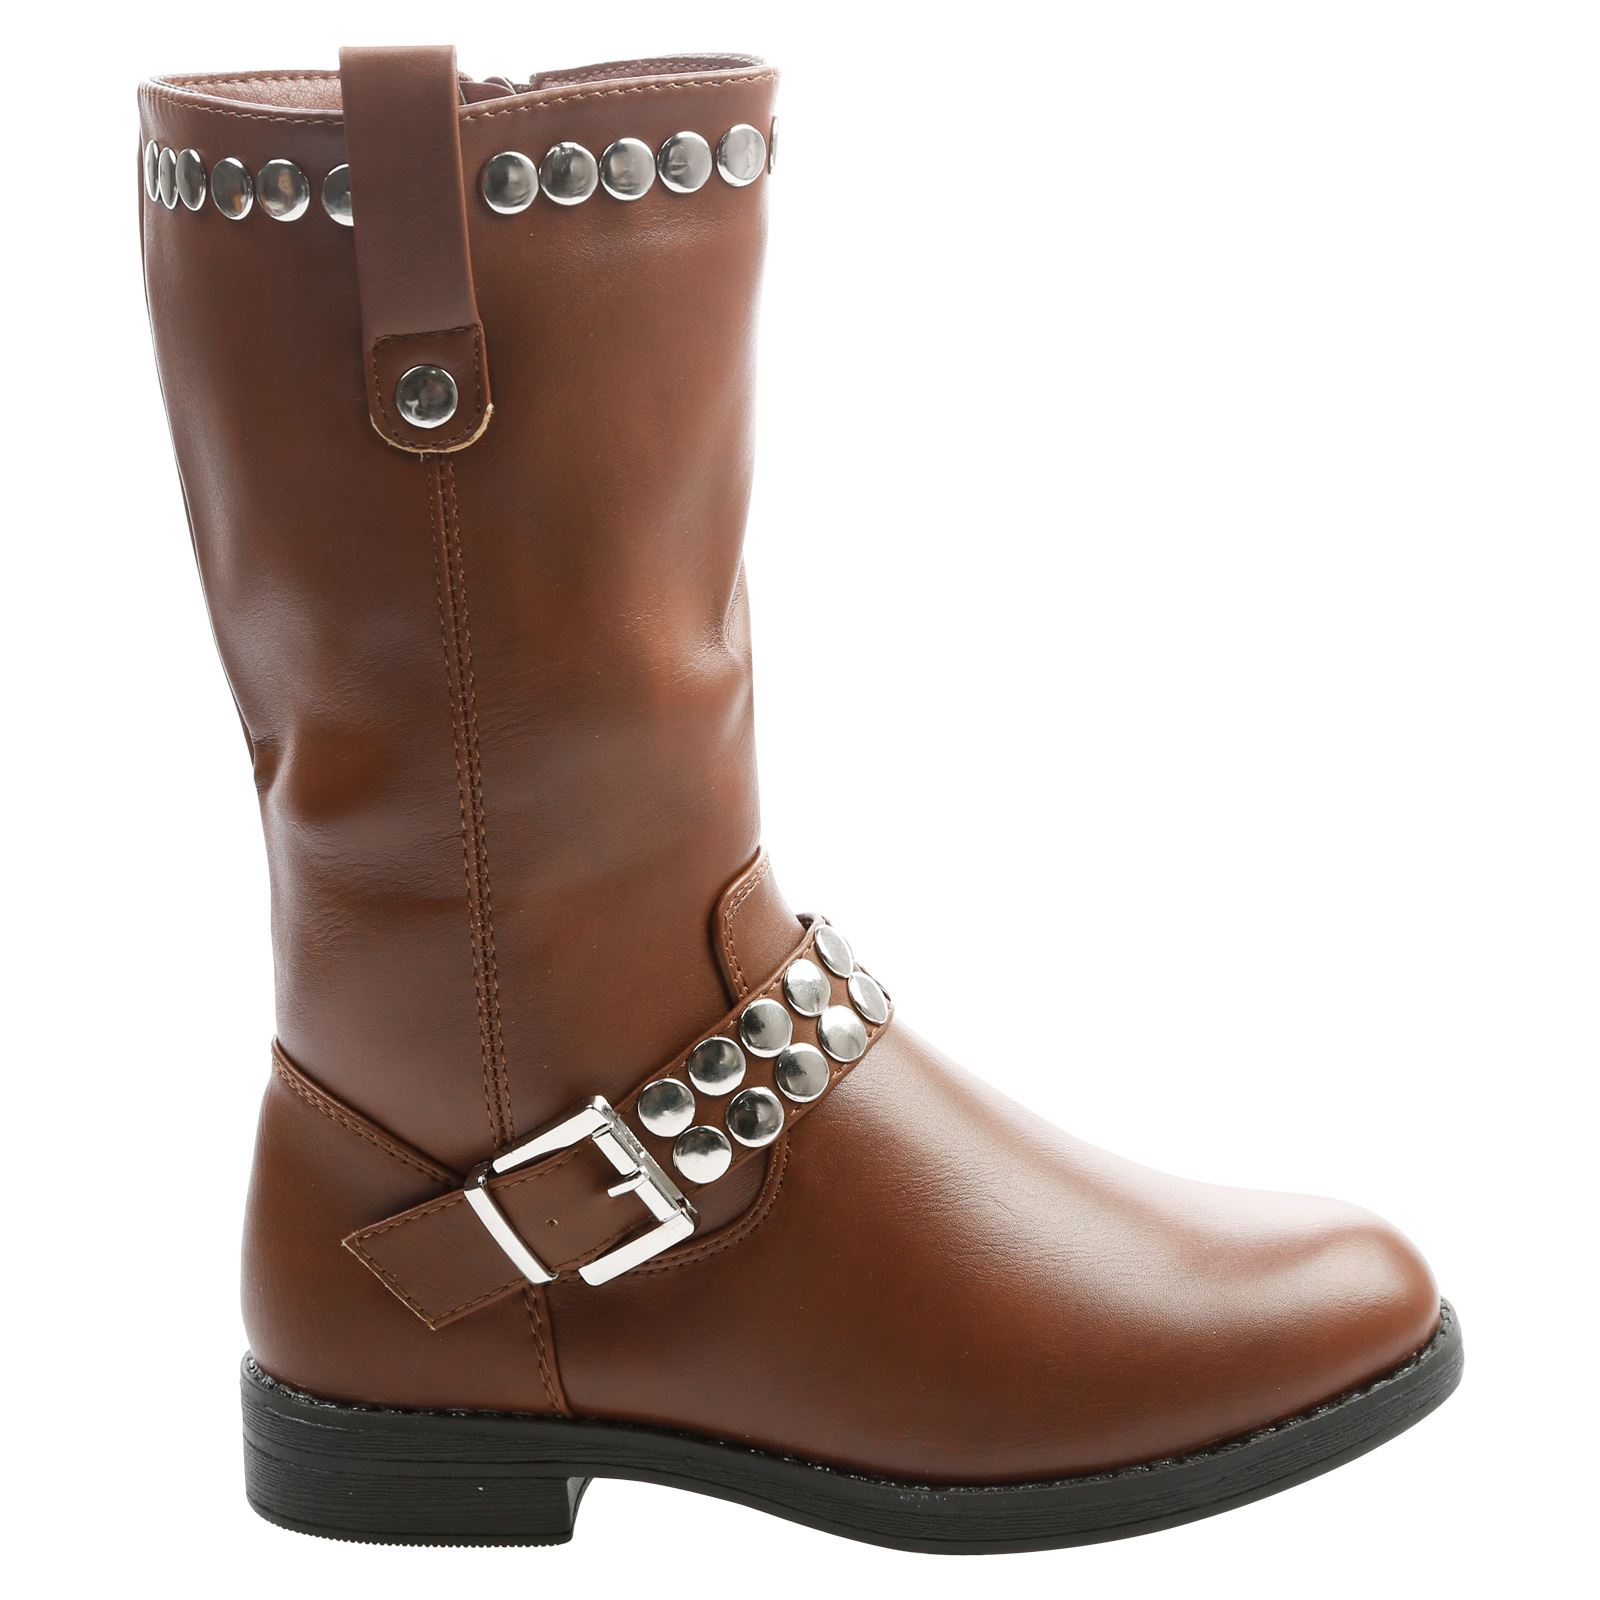 Inga Girls Kids Flat Low Heel Studded Mid Calf Riding Boots Childrens Shoes Size